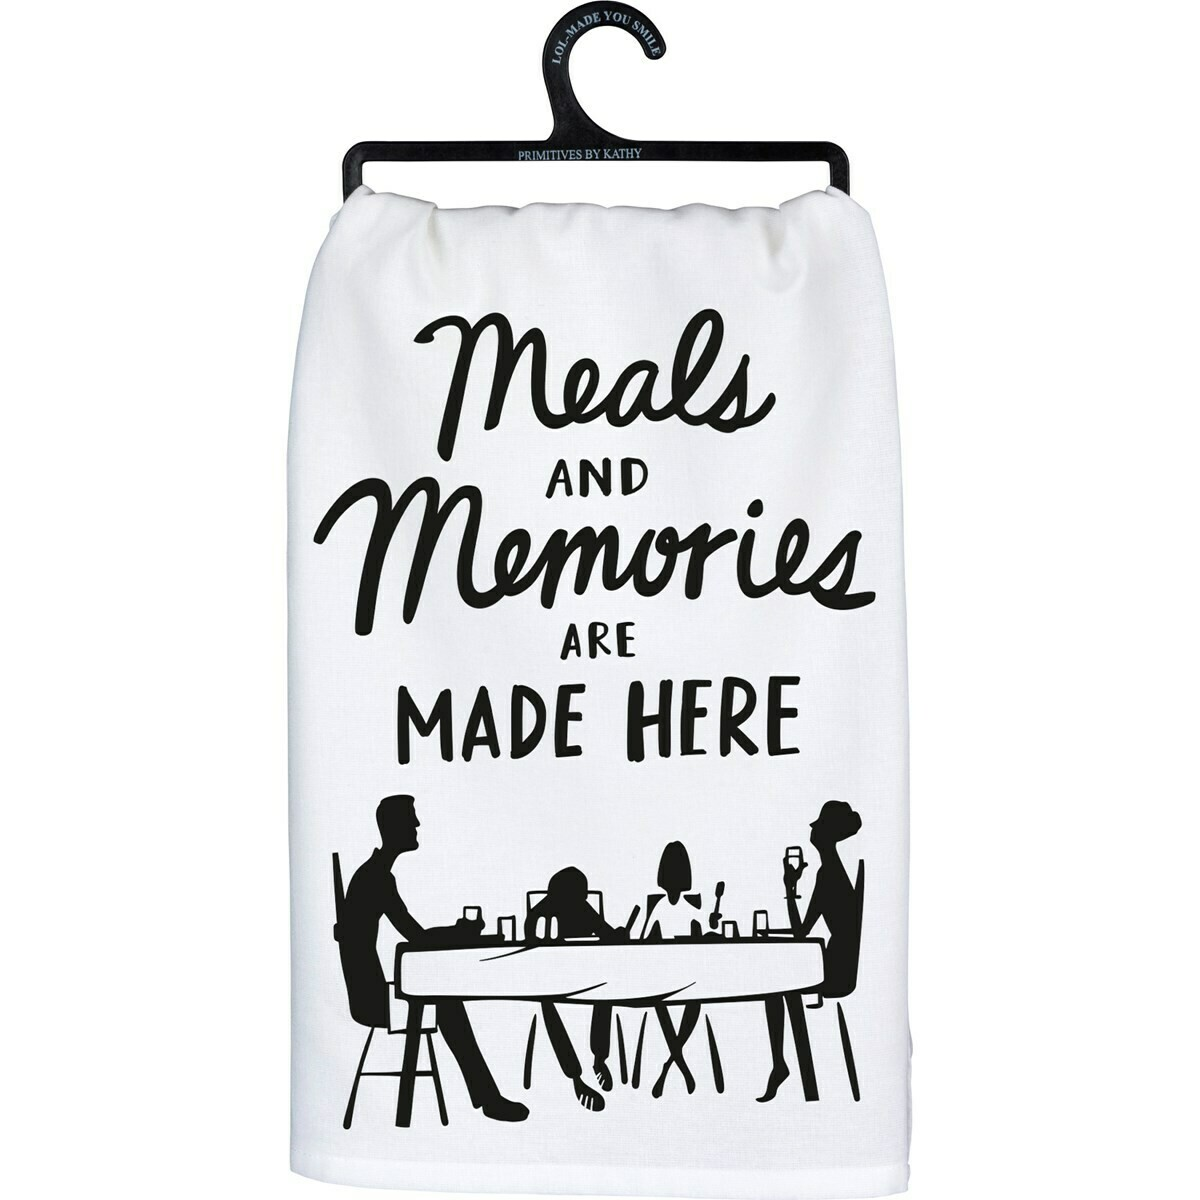 Memories are Made Here Dish Towel